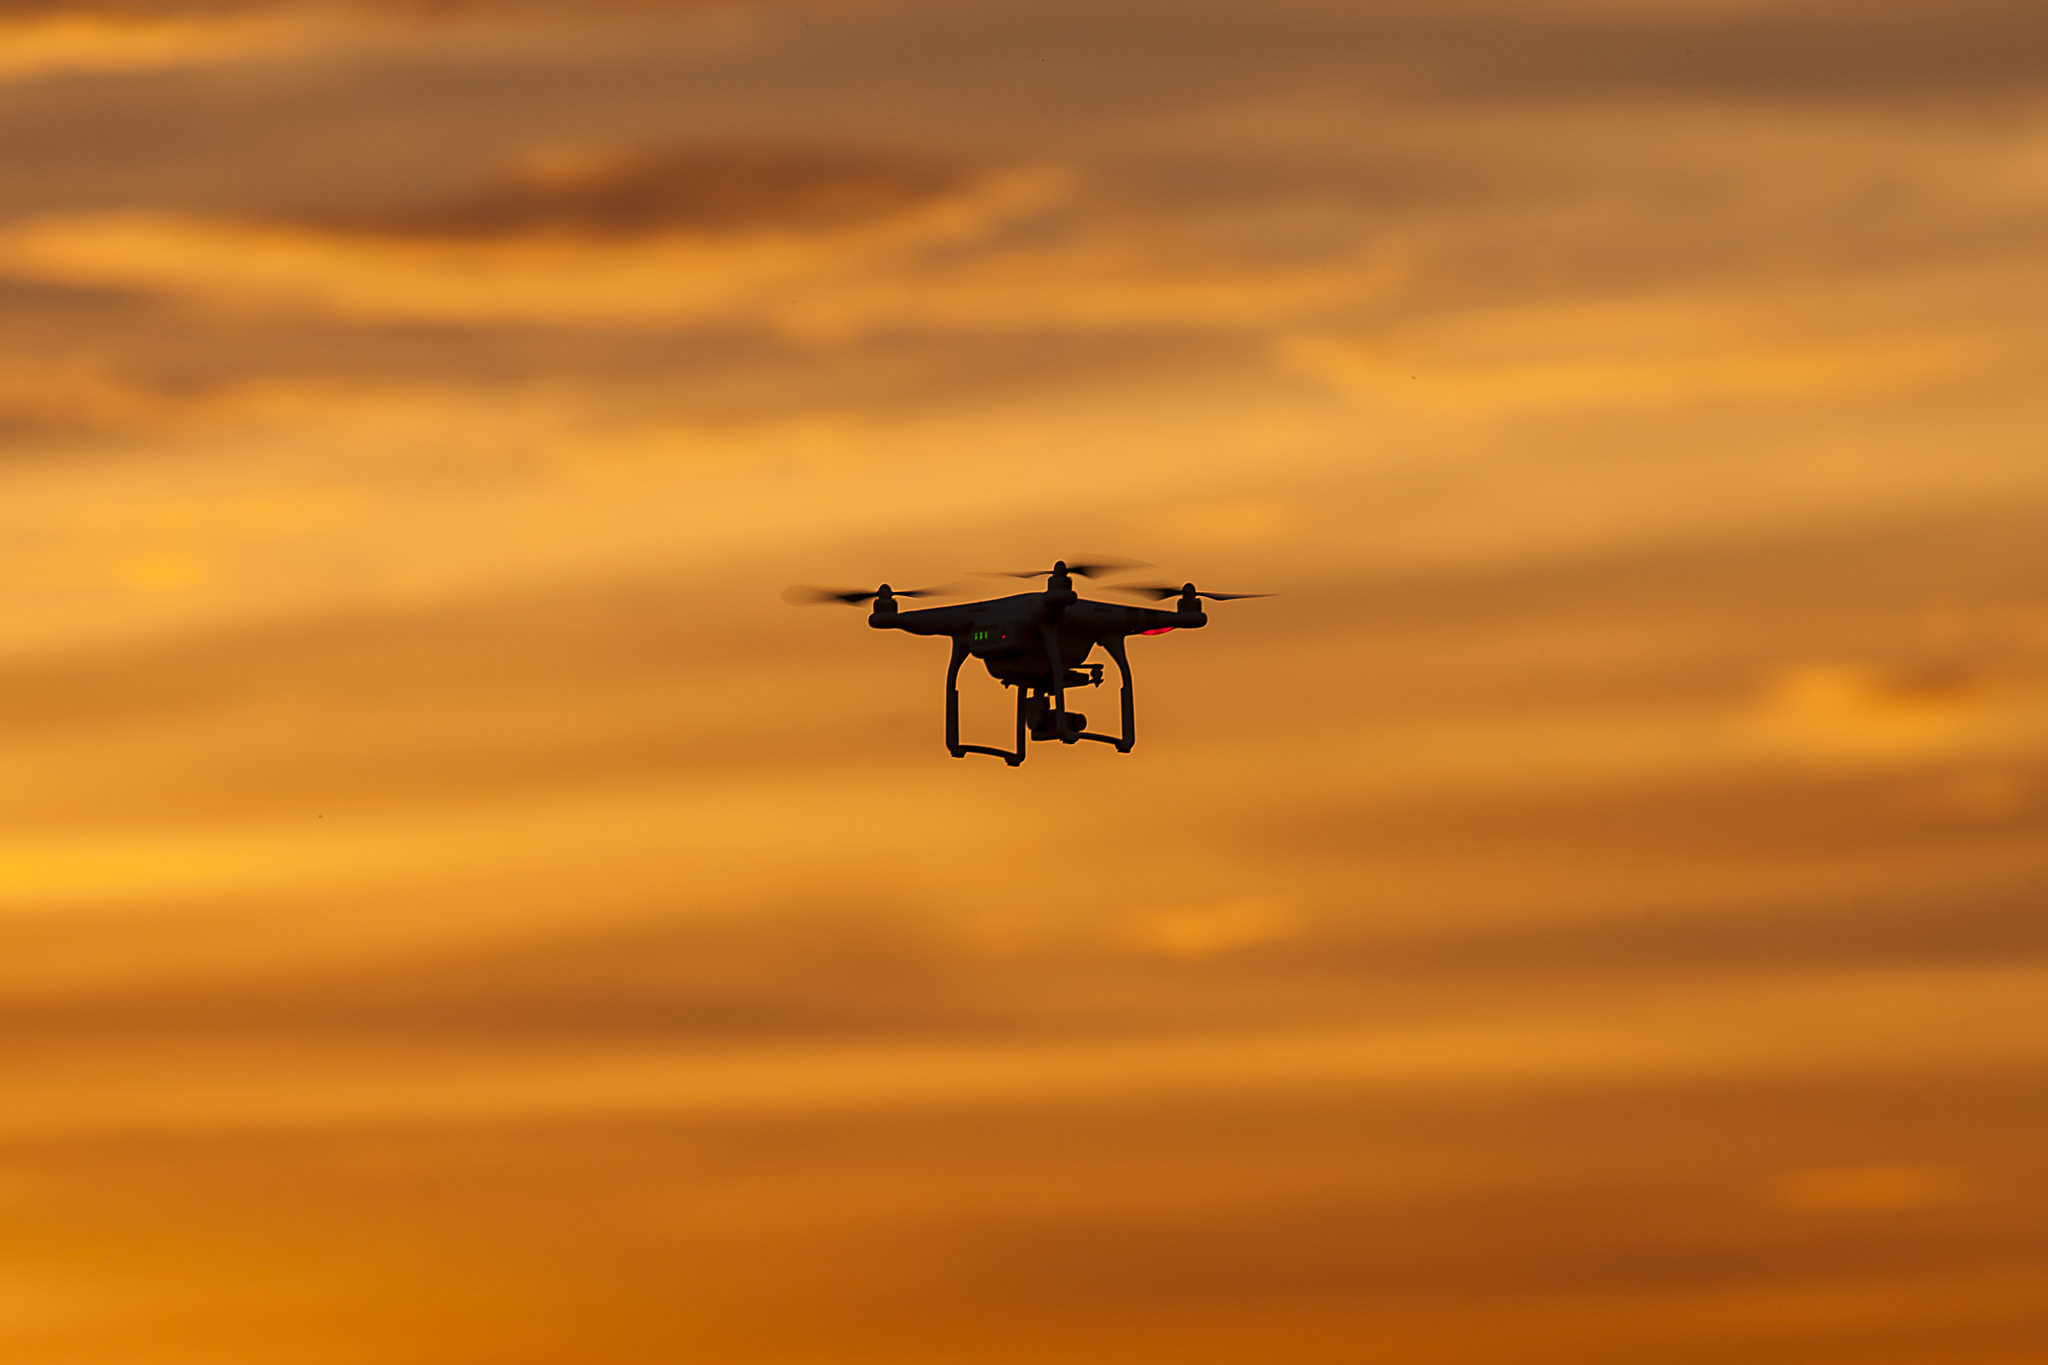 Sunset Drone, Greg Clarke September 29, 2015